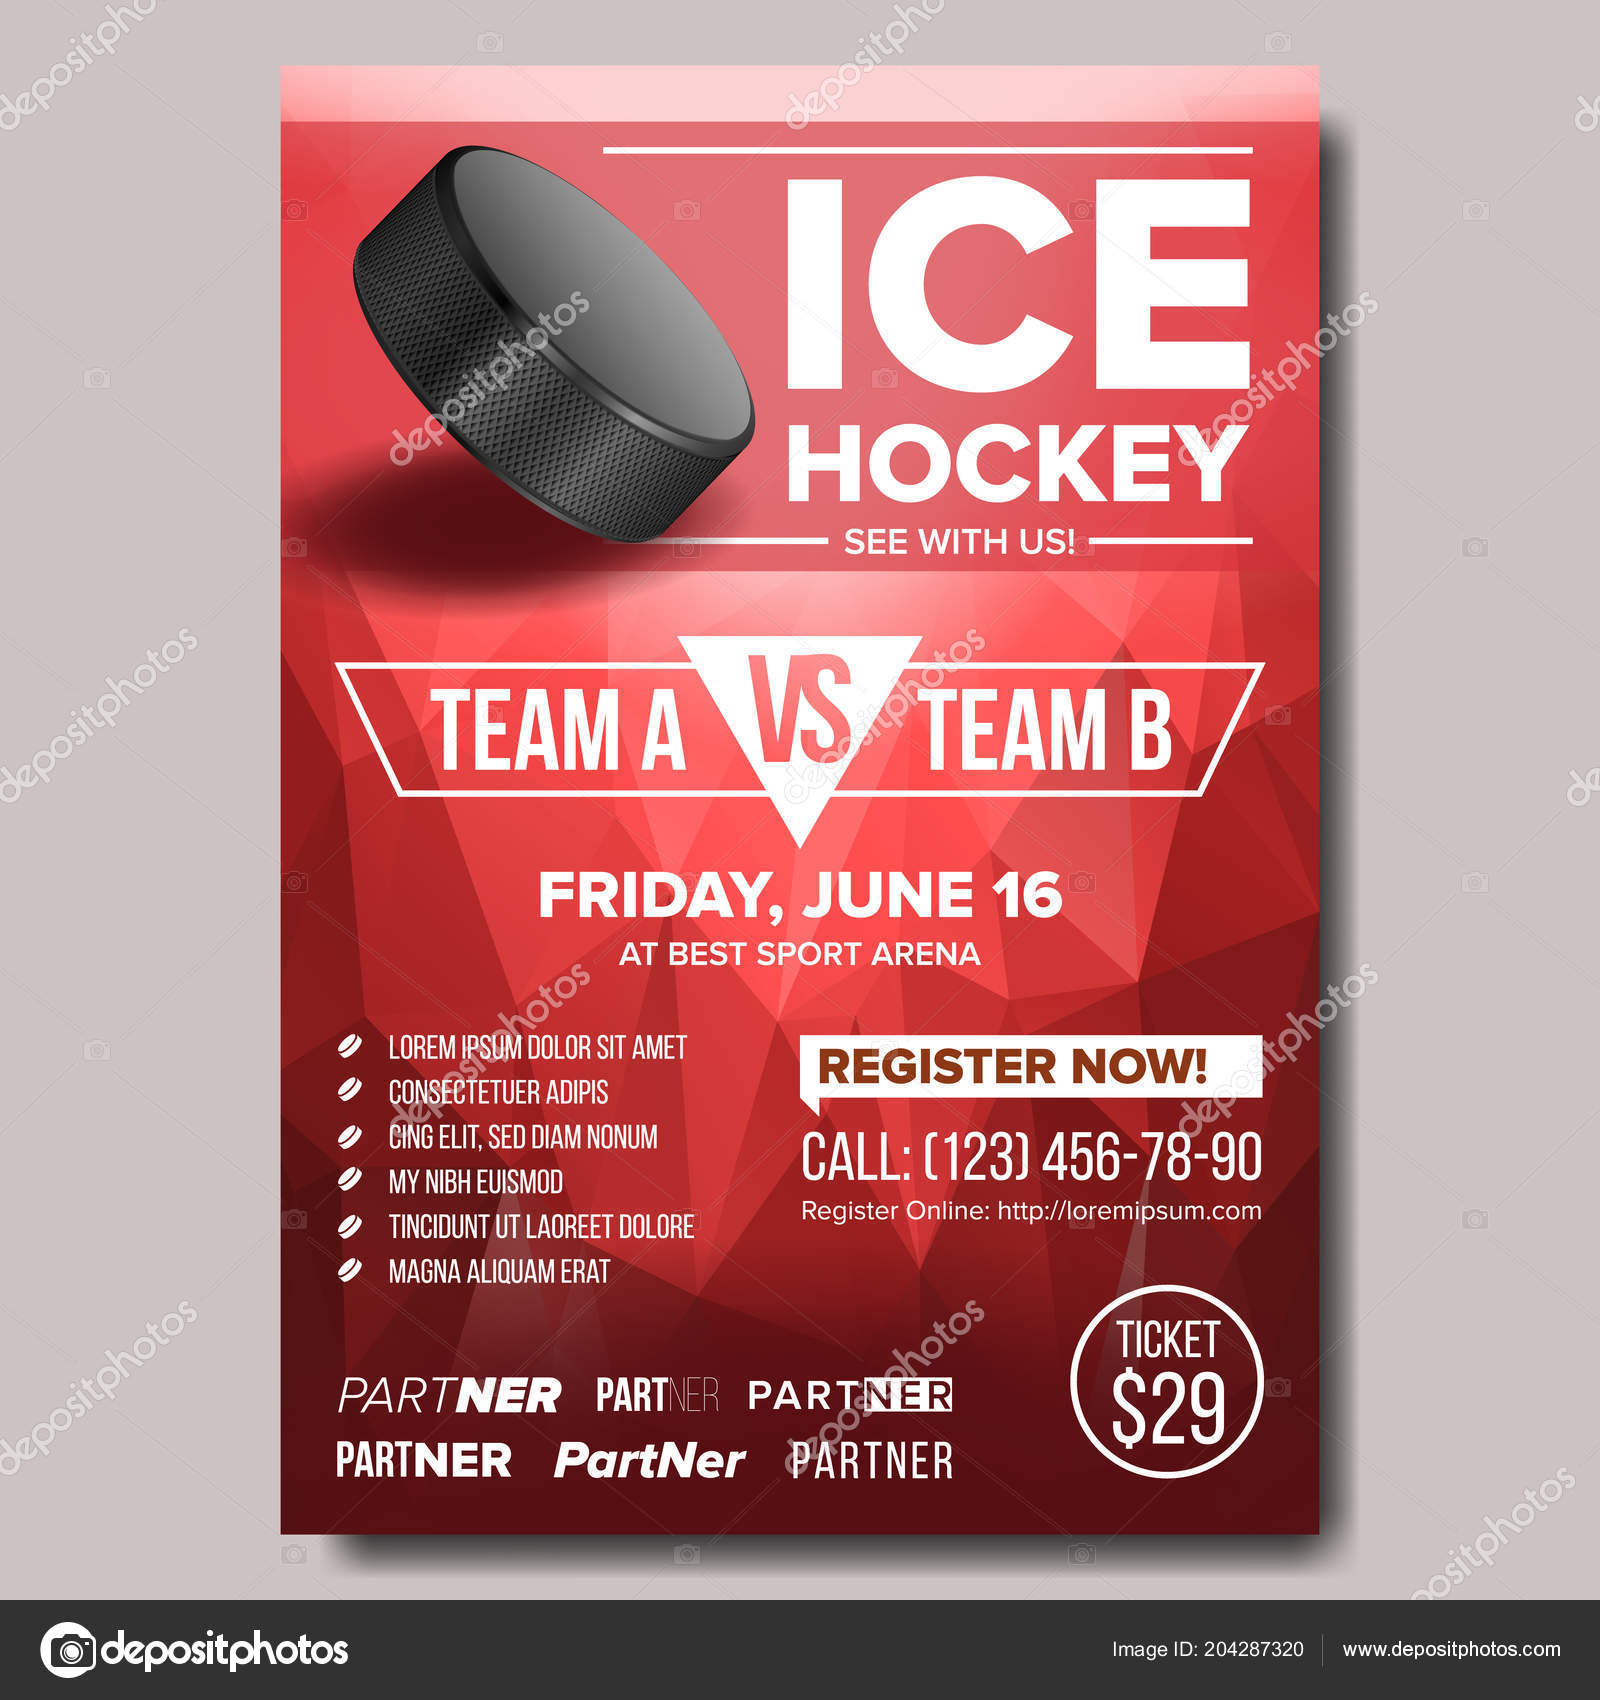 Ice Hockey Poster Vector. Ice Hockey Puck. Vertical Design For Sport ...